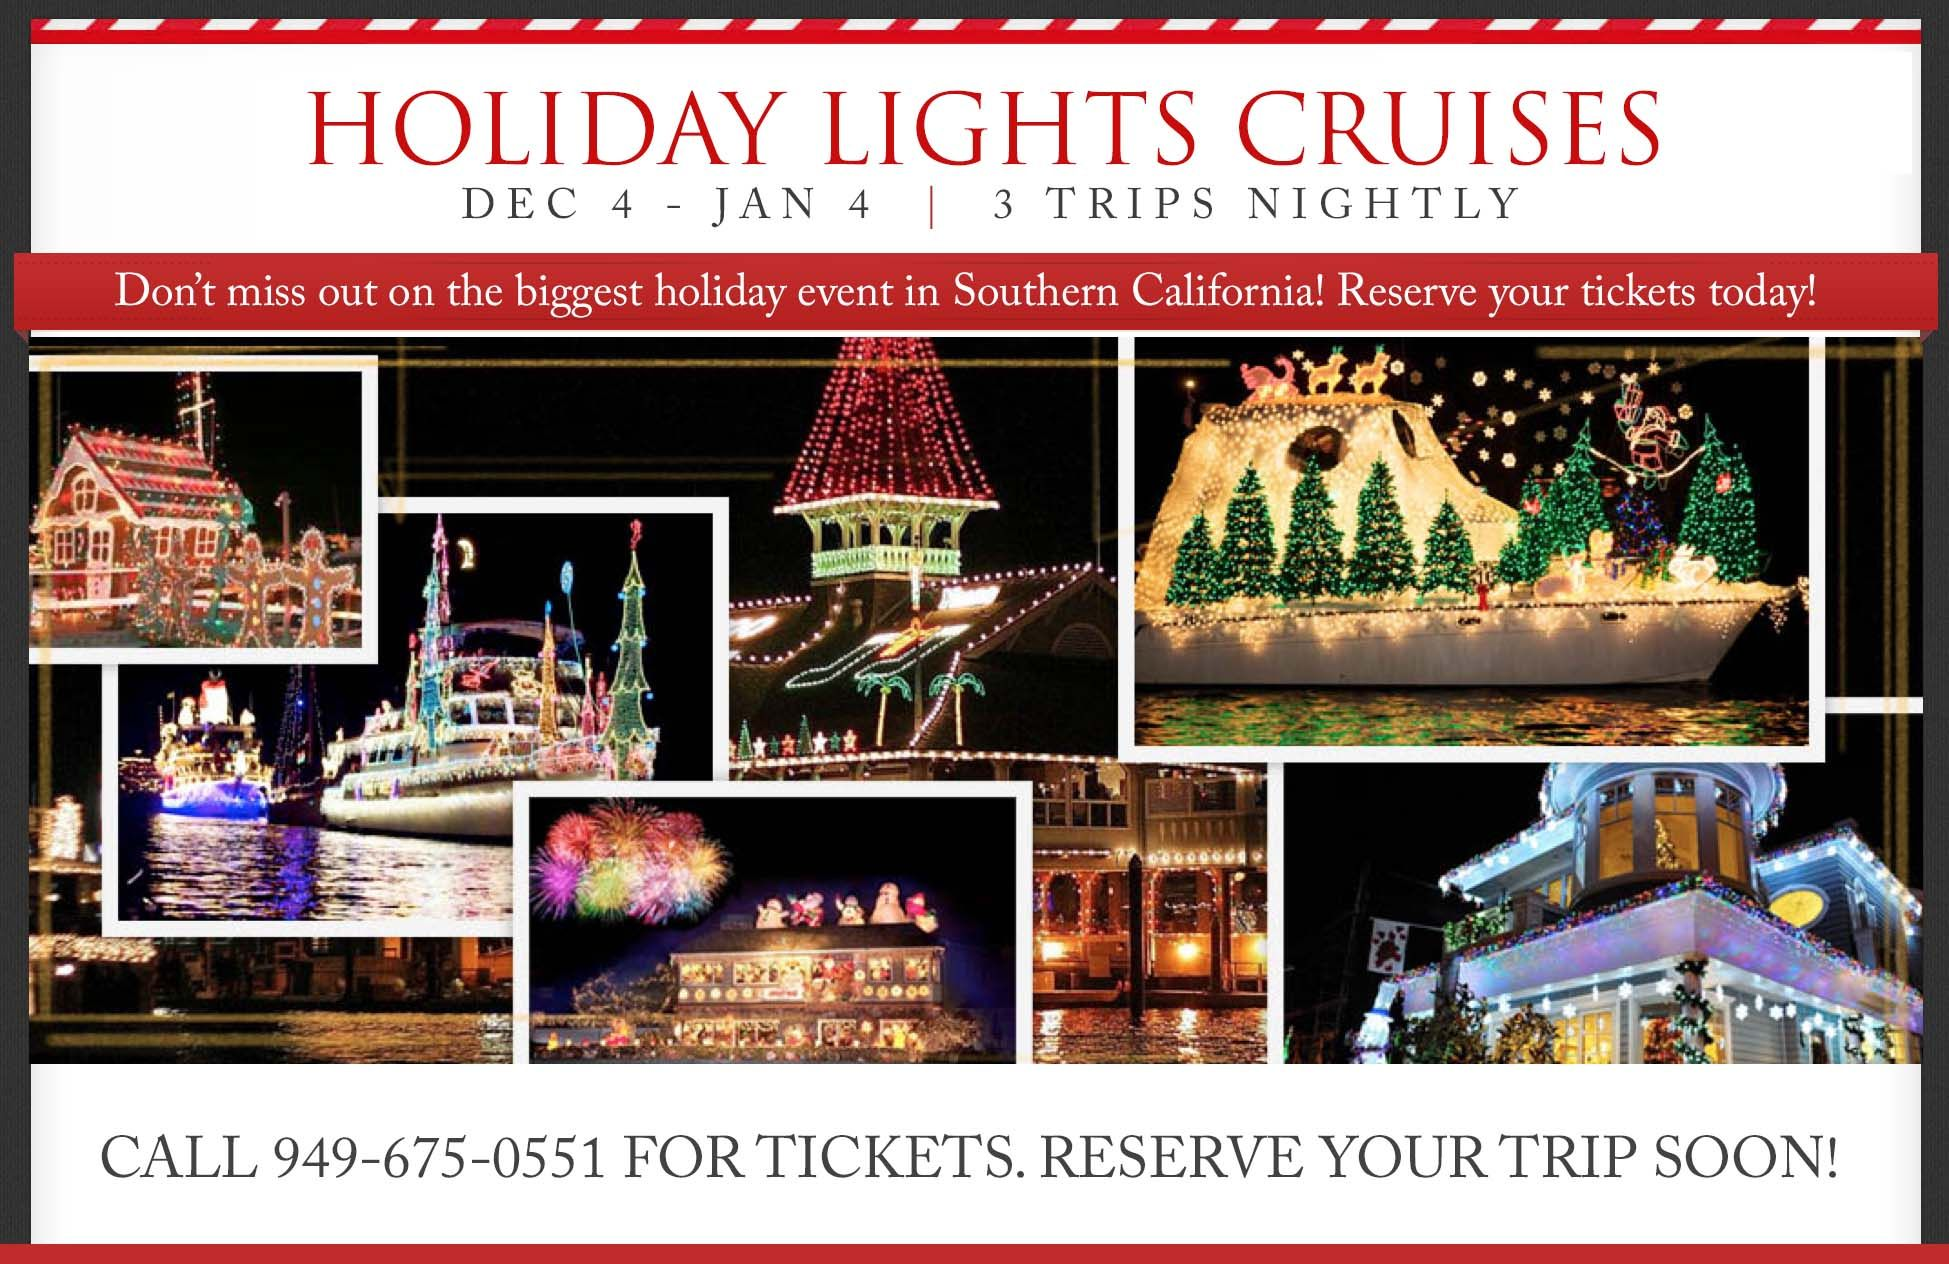 Visit Www Christmasparadeboats To Find Out About Our Holiday Lights Cruises At Newport Harbor